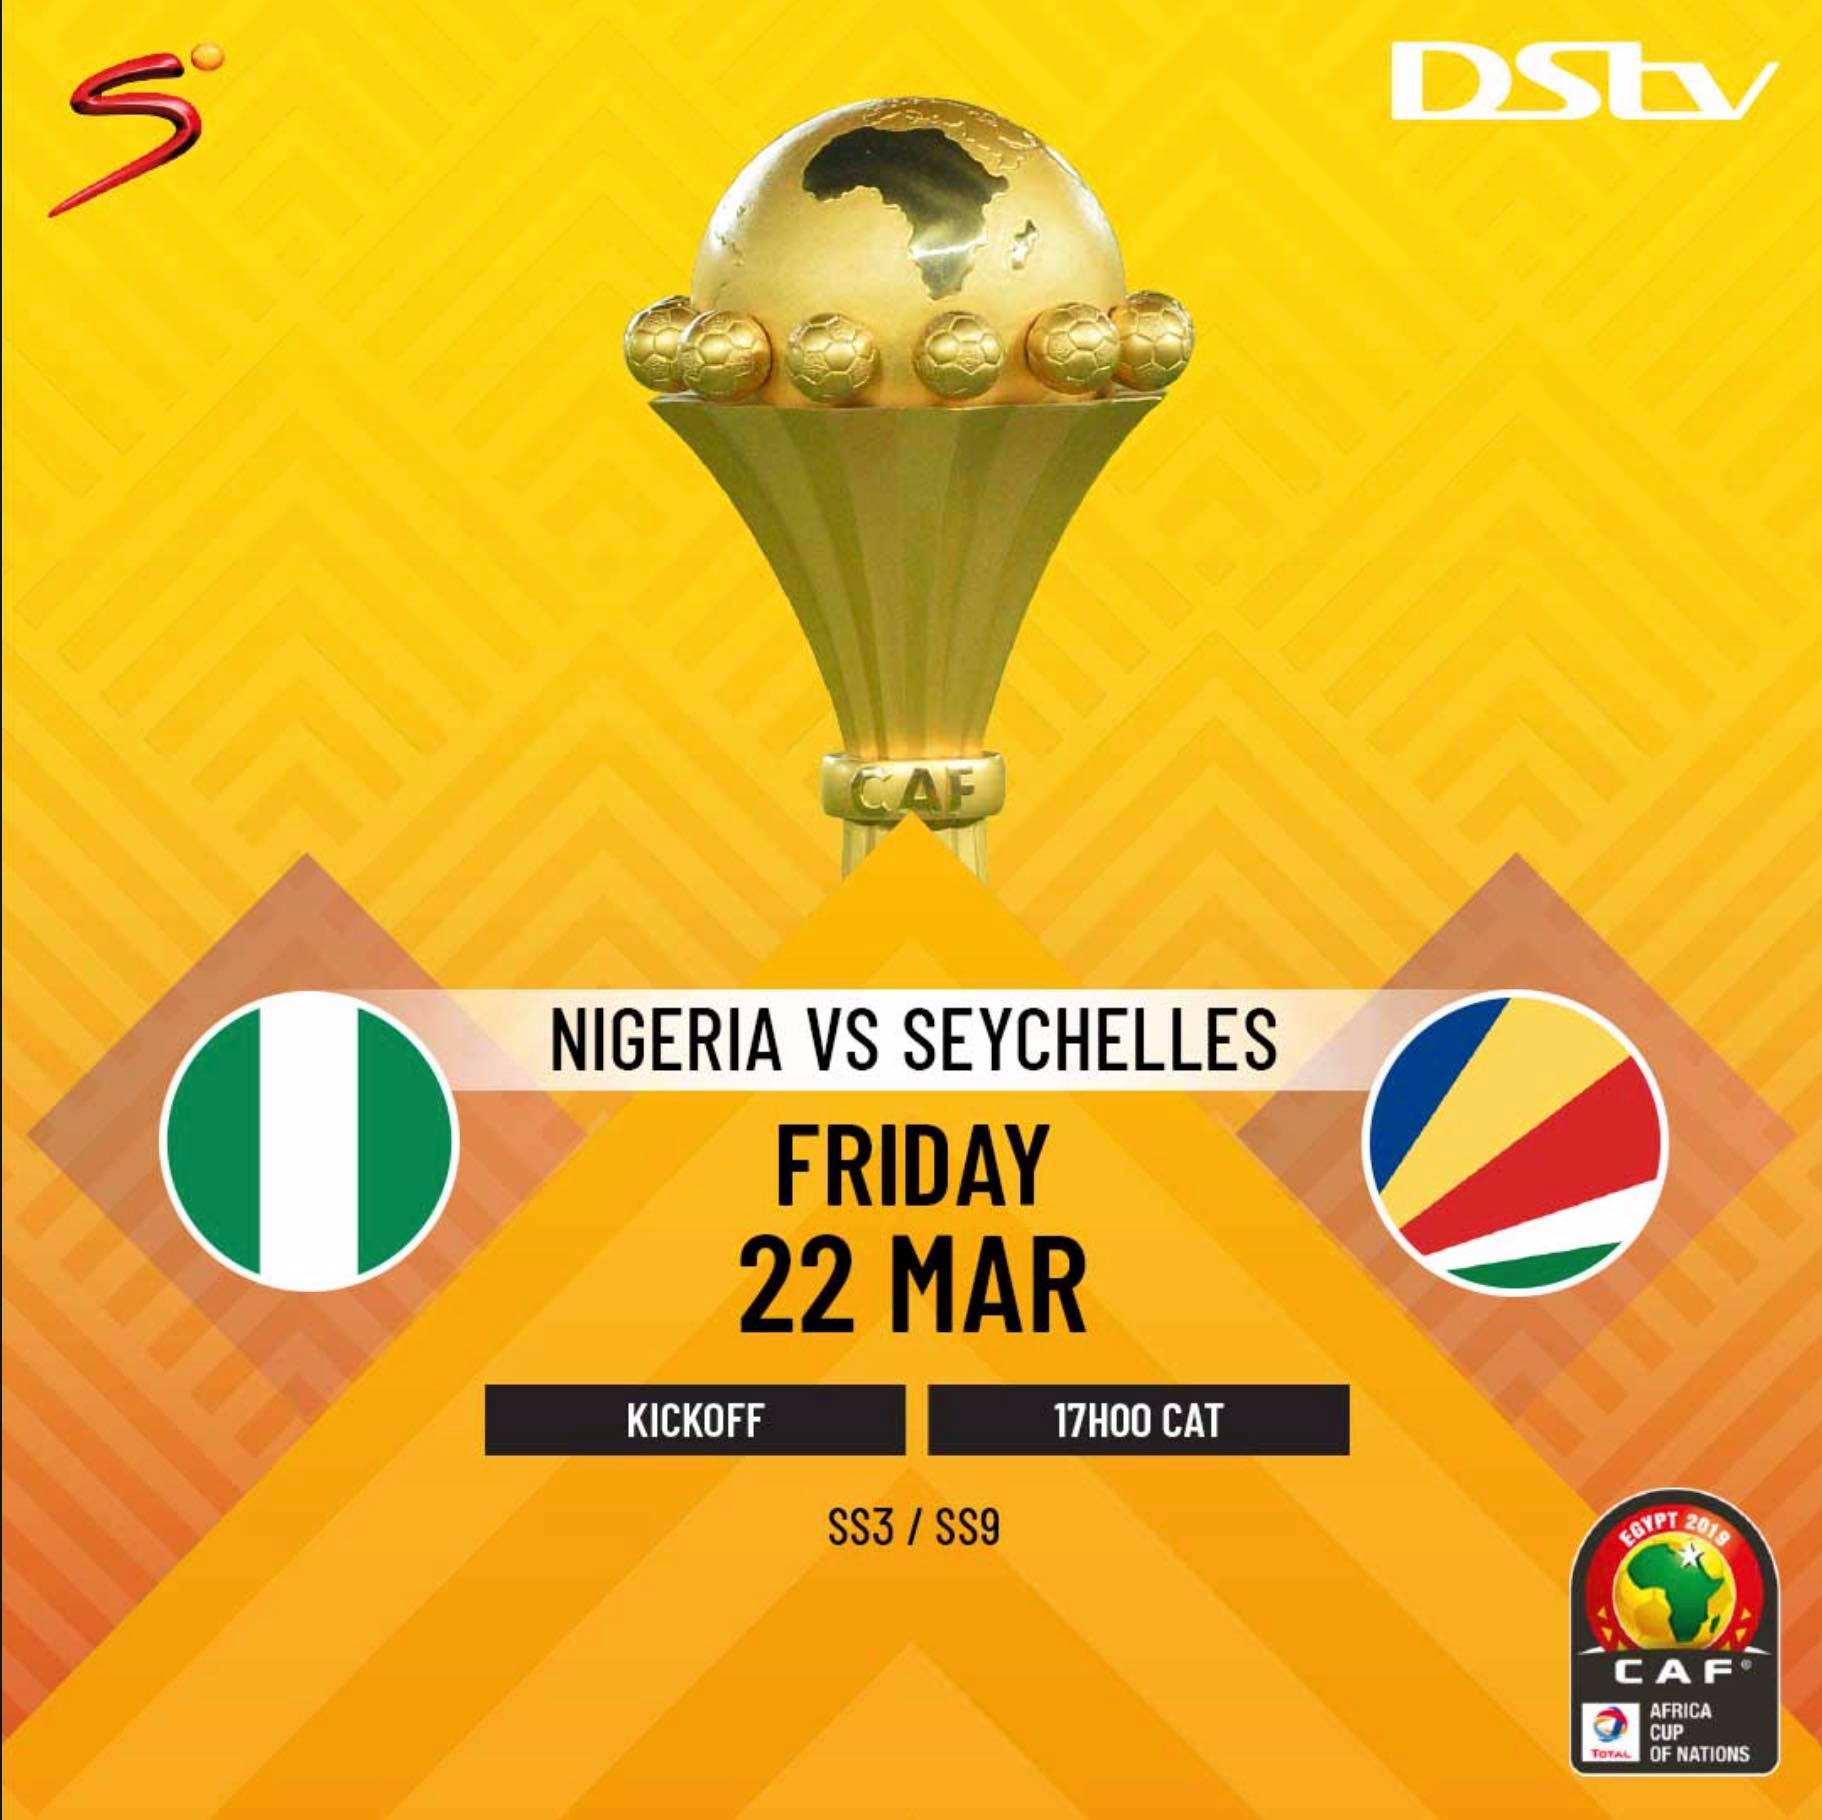 54517082 10157116505849640 7099624486961414144 o - Nigeria vs Seychelles: Team News, Time And How To Watch The Match